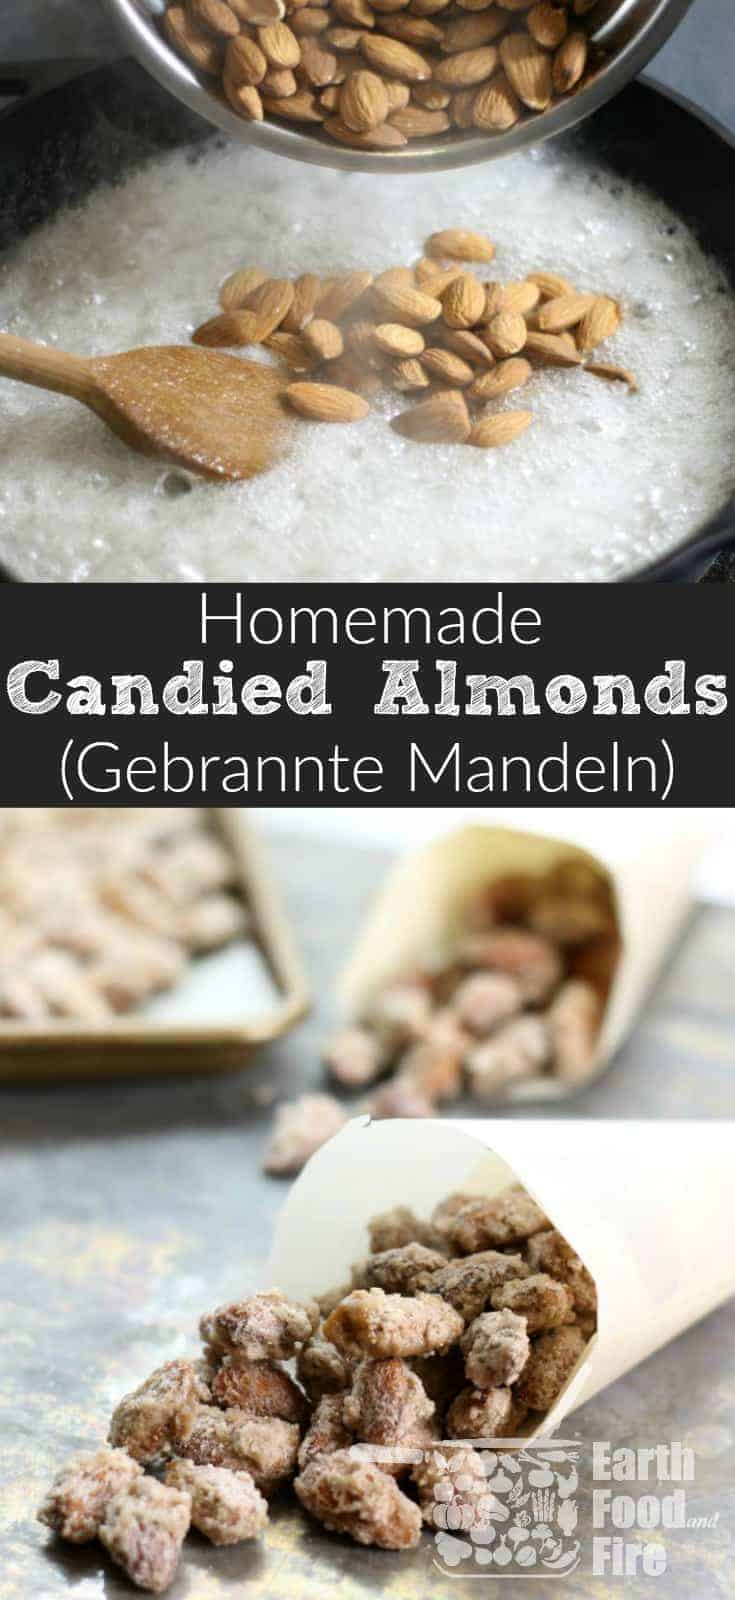 A delicious treat especially during the holiday season, candied almonds,('gebrannte mandeln' in German) are easy to make at home with only a handful of ingredients. Kids and adults a like will love these sweet roasted nuts! Gluten Free and Dairy Free to boot! #almonds #candied #gebrannte #mandeln